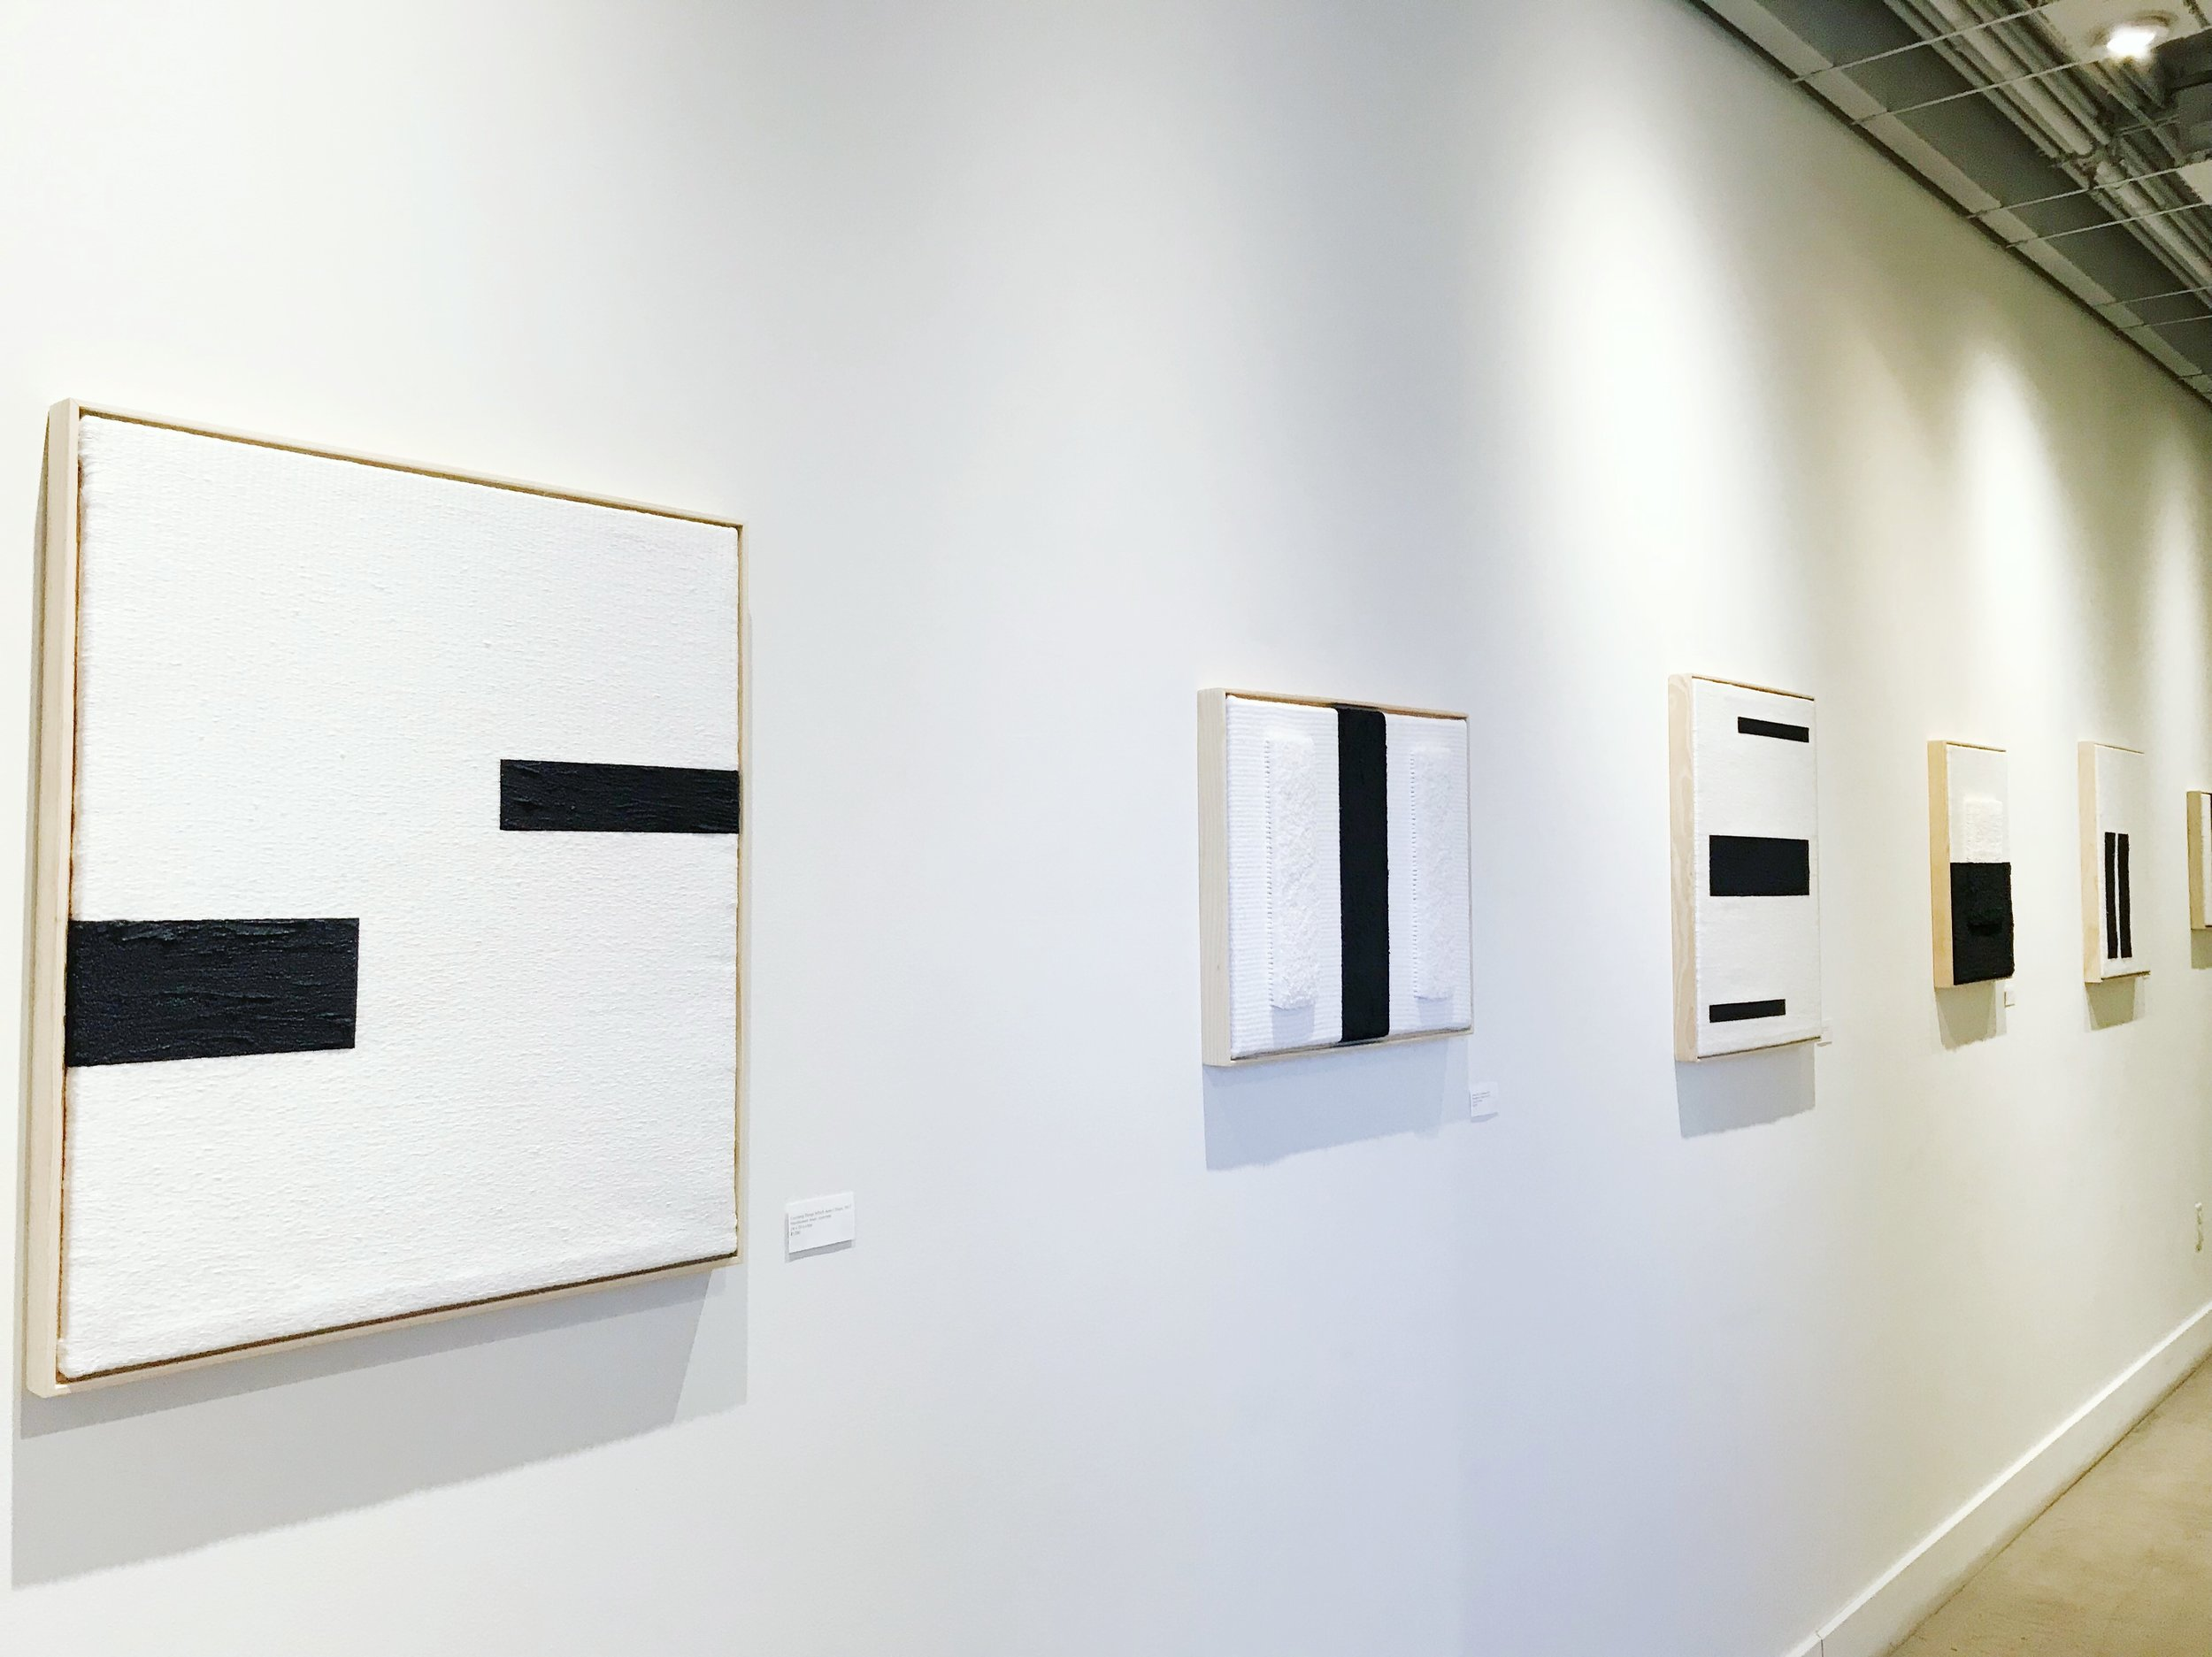 Image from solo exhibition, Permanence In The Fleeting 2018